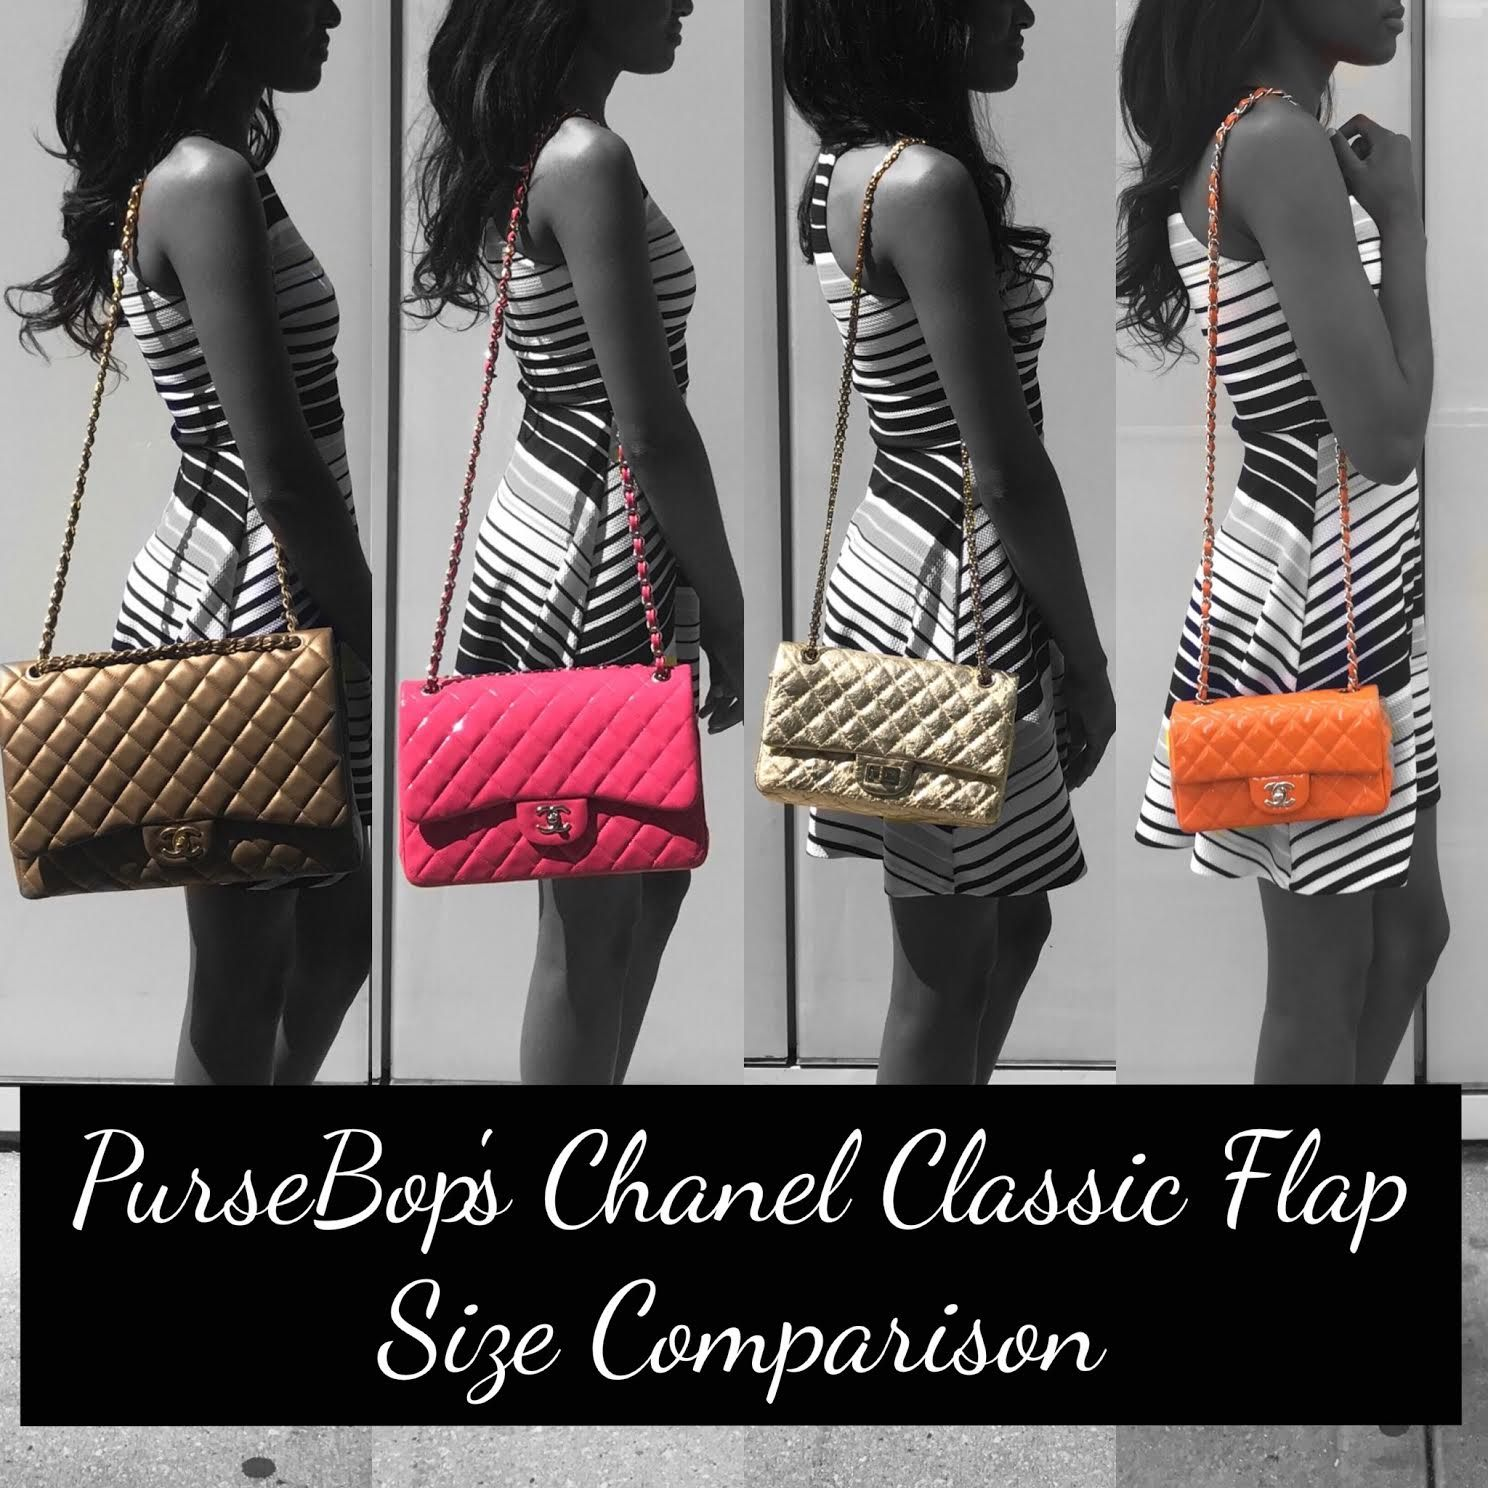 An in-depth comparison of the Chanel Classic Flap sizes complete with real  life modeling pictures of each on two body frames. 325b8db1b92ec